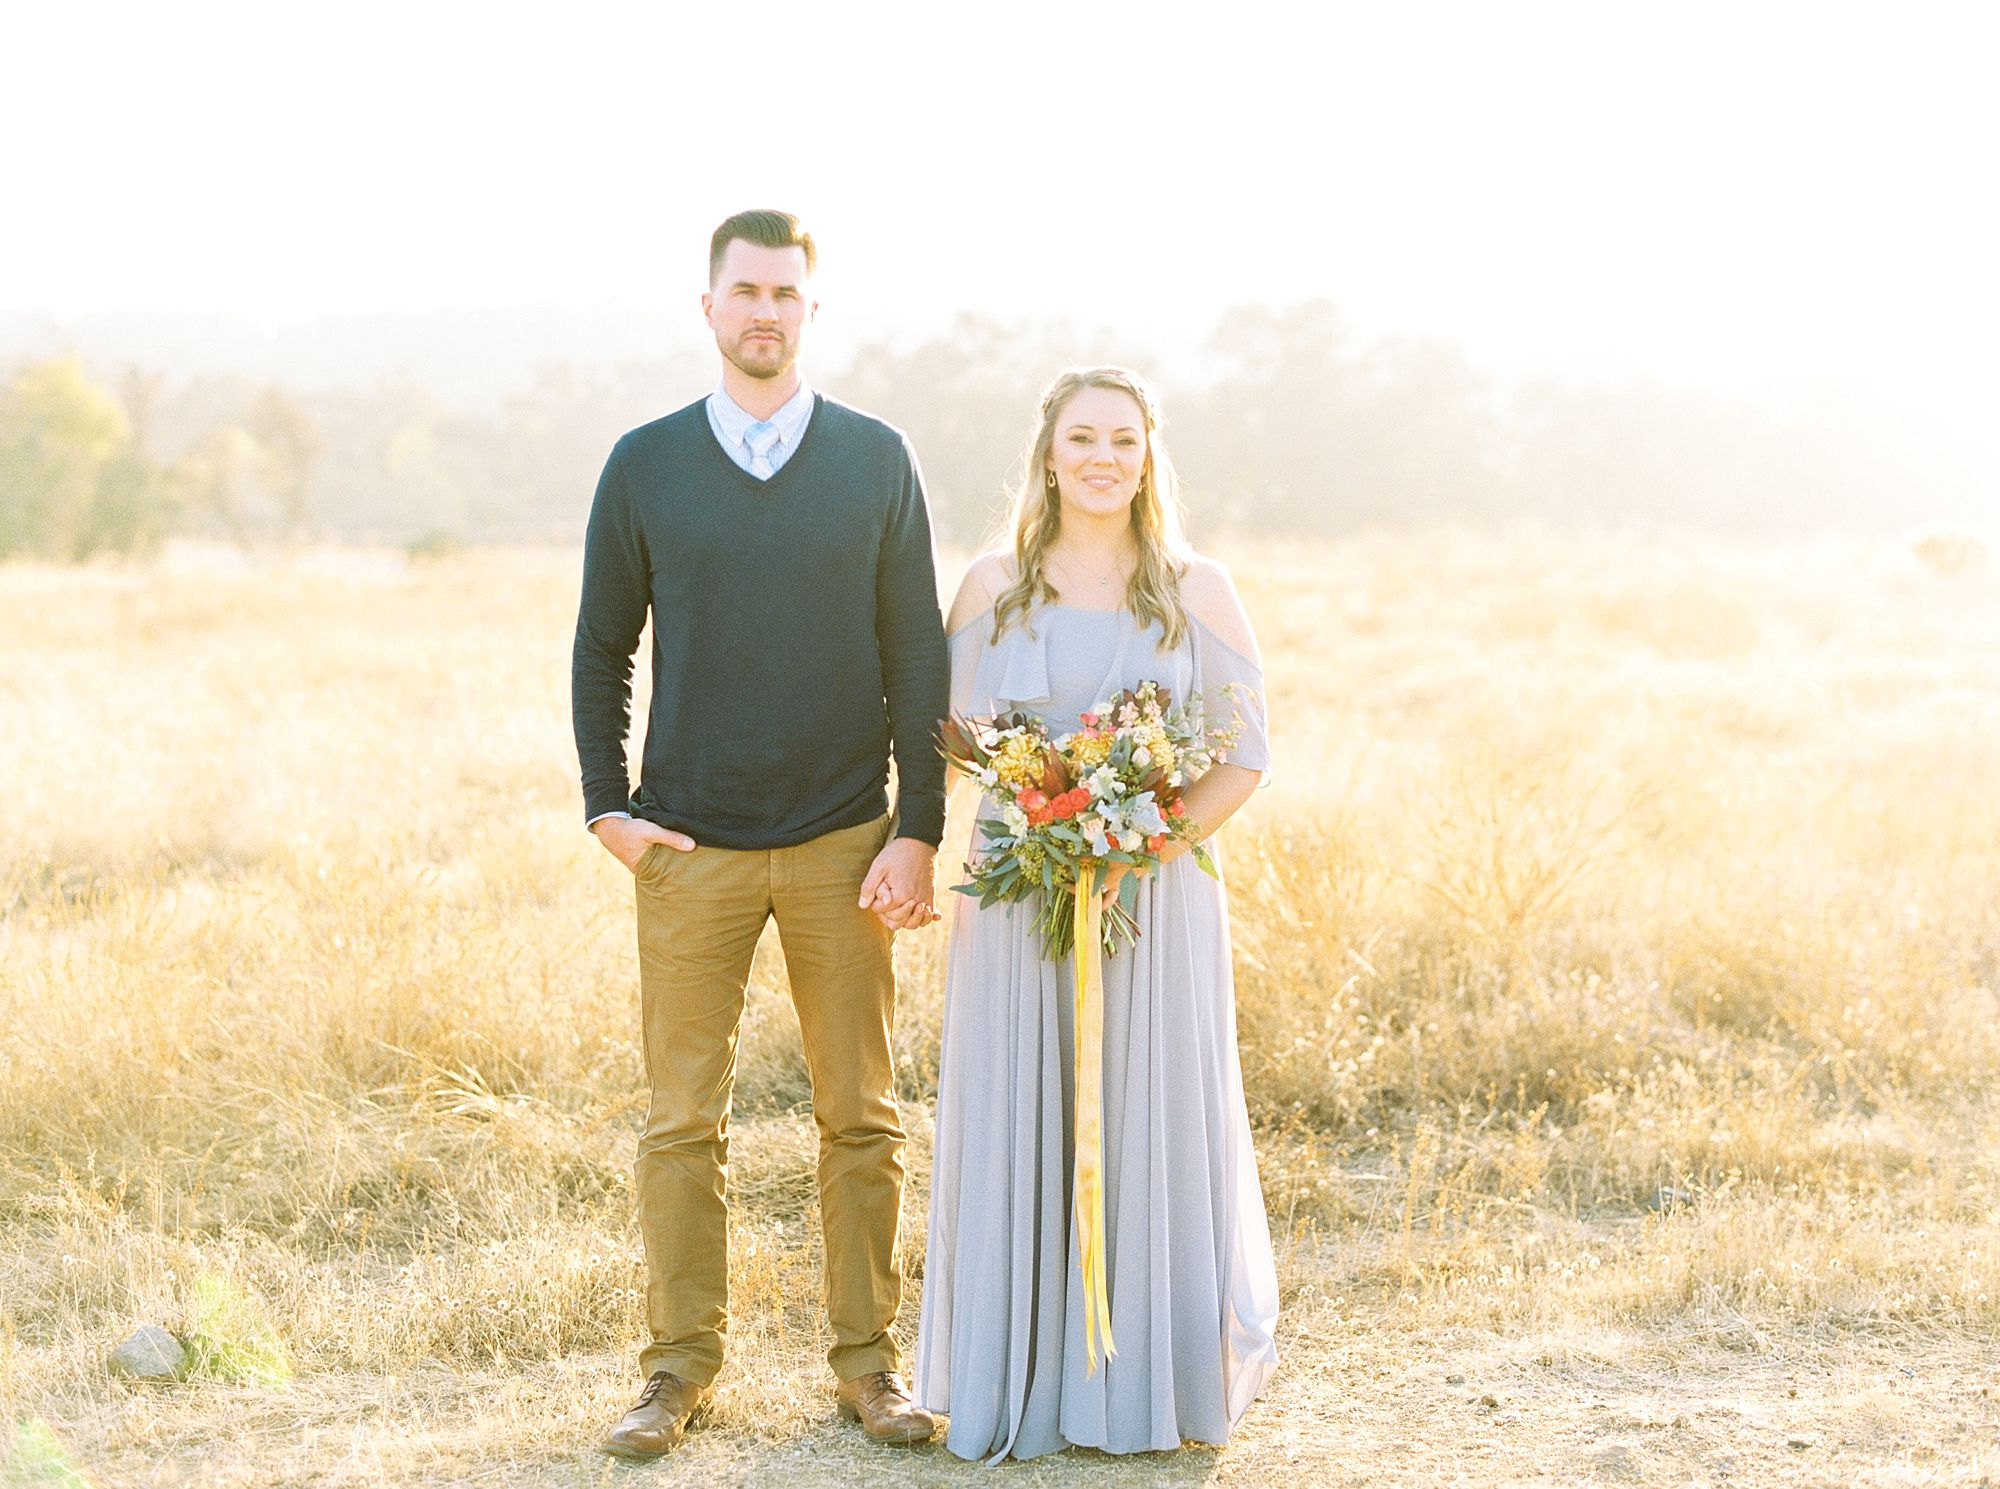 Ten Year Anniversary Portraits on Film - Ashley Baumgartner - Denise and Dan - Sacramento Wedding Photographer - Paso Robles Wedding Photography_0002.jpg